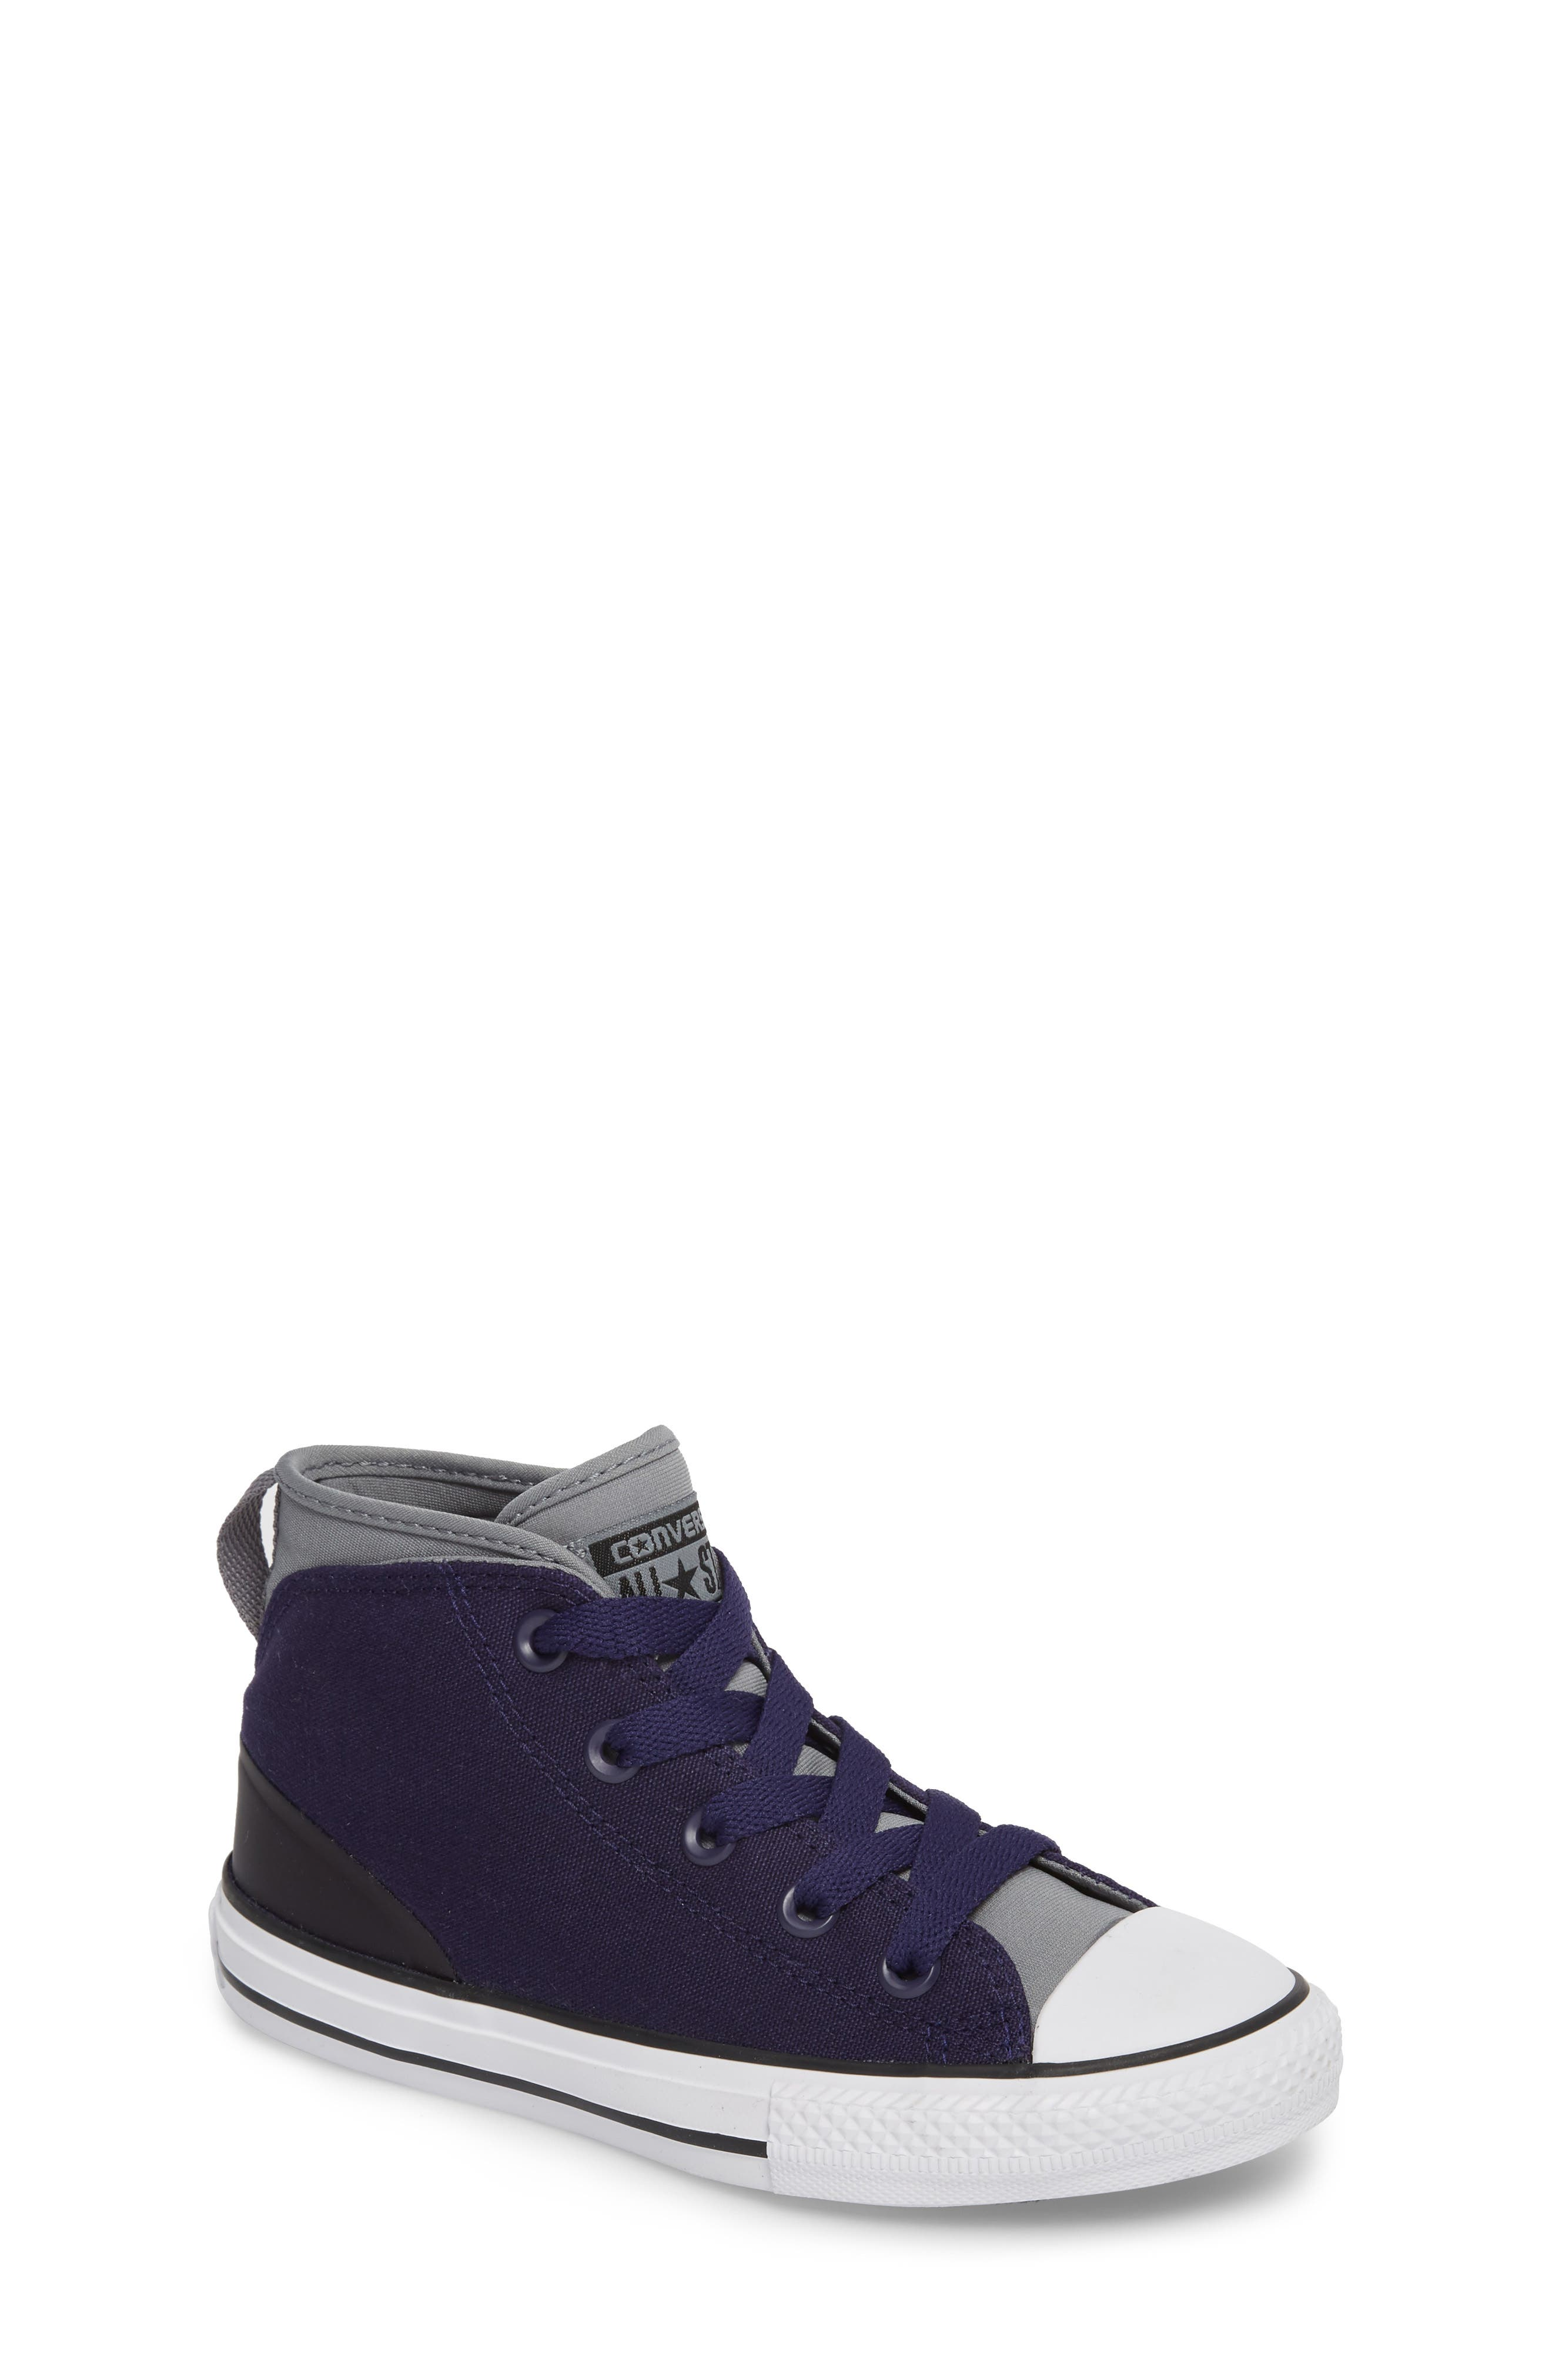 Chuck Taylor<sup>®</sup> All Star<sup>®</sup> Syde Street High Top Sneaker,                         Main,                         color, Midnight Canvas